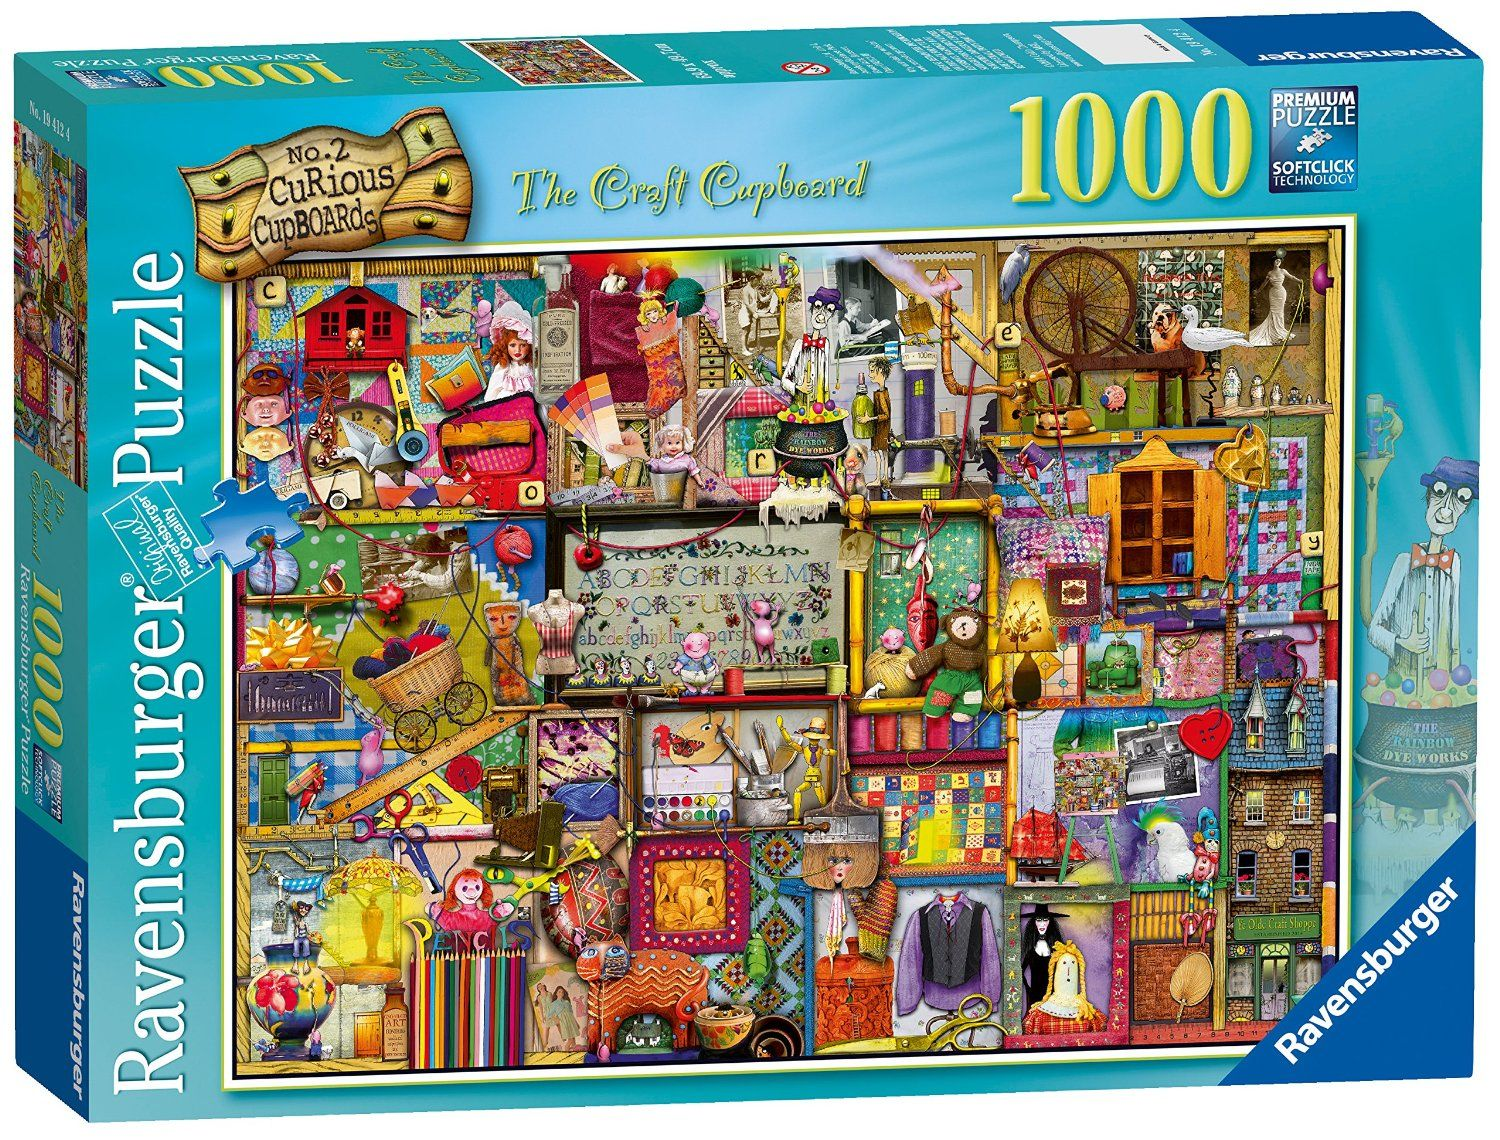 58 best puzzles images on pinterest jigsaw puzzles puzzles and